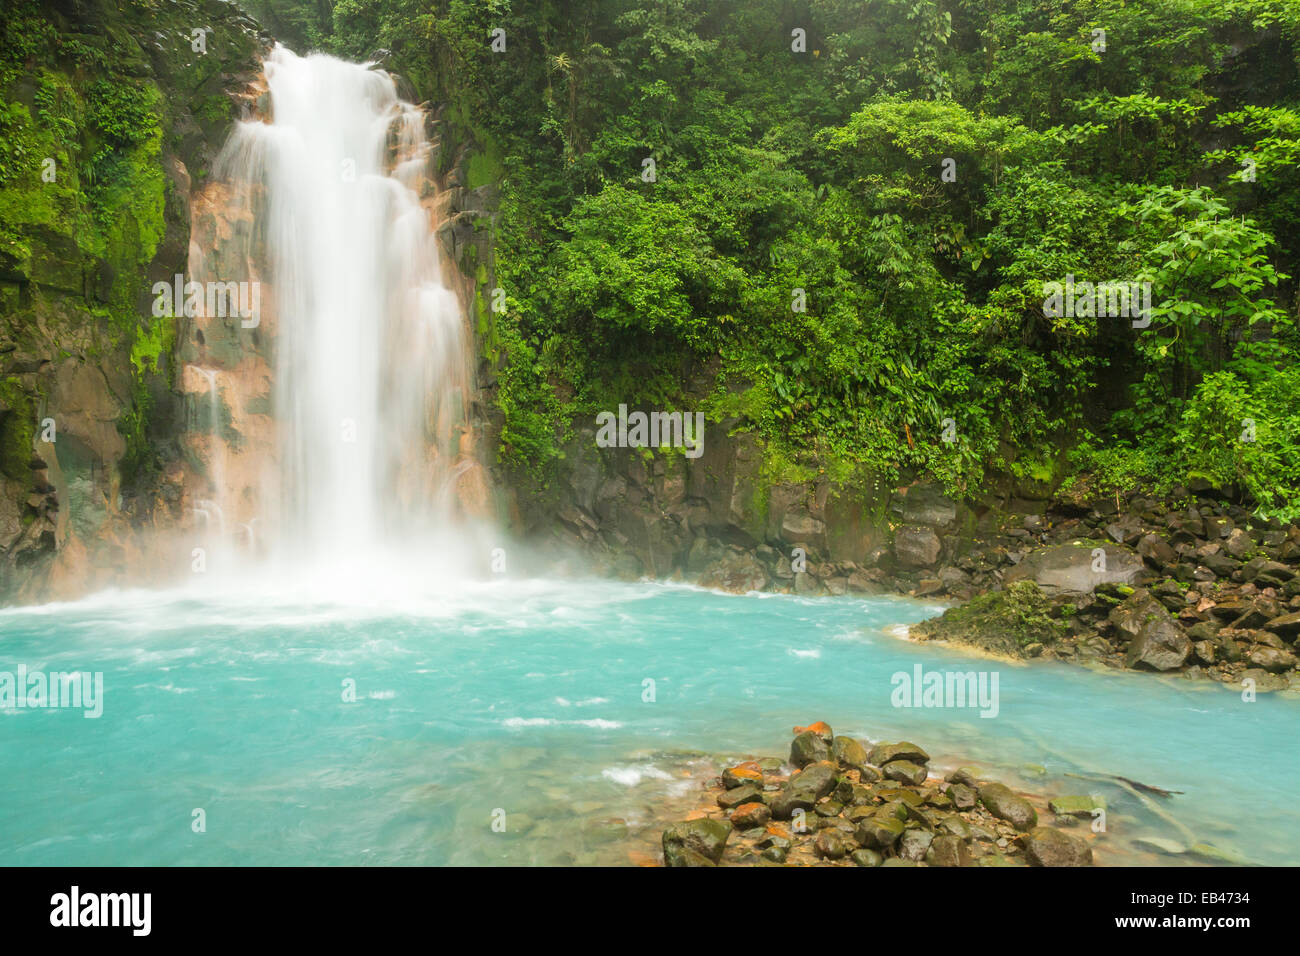 The cerulean blue waters of the Rio Celeste Waterfall in Volcan Tenorio National Park, Costa Rica. - Stock Image